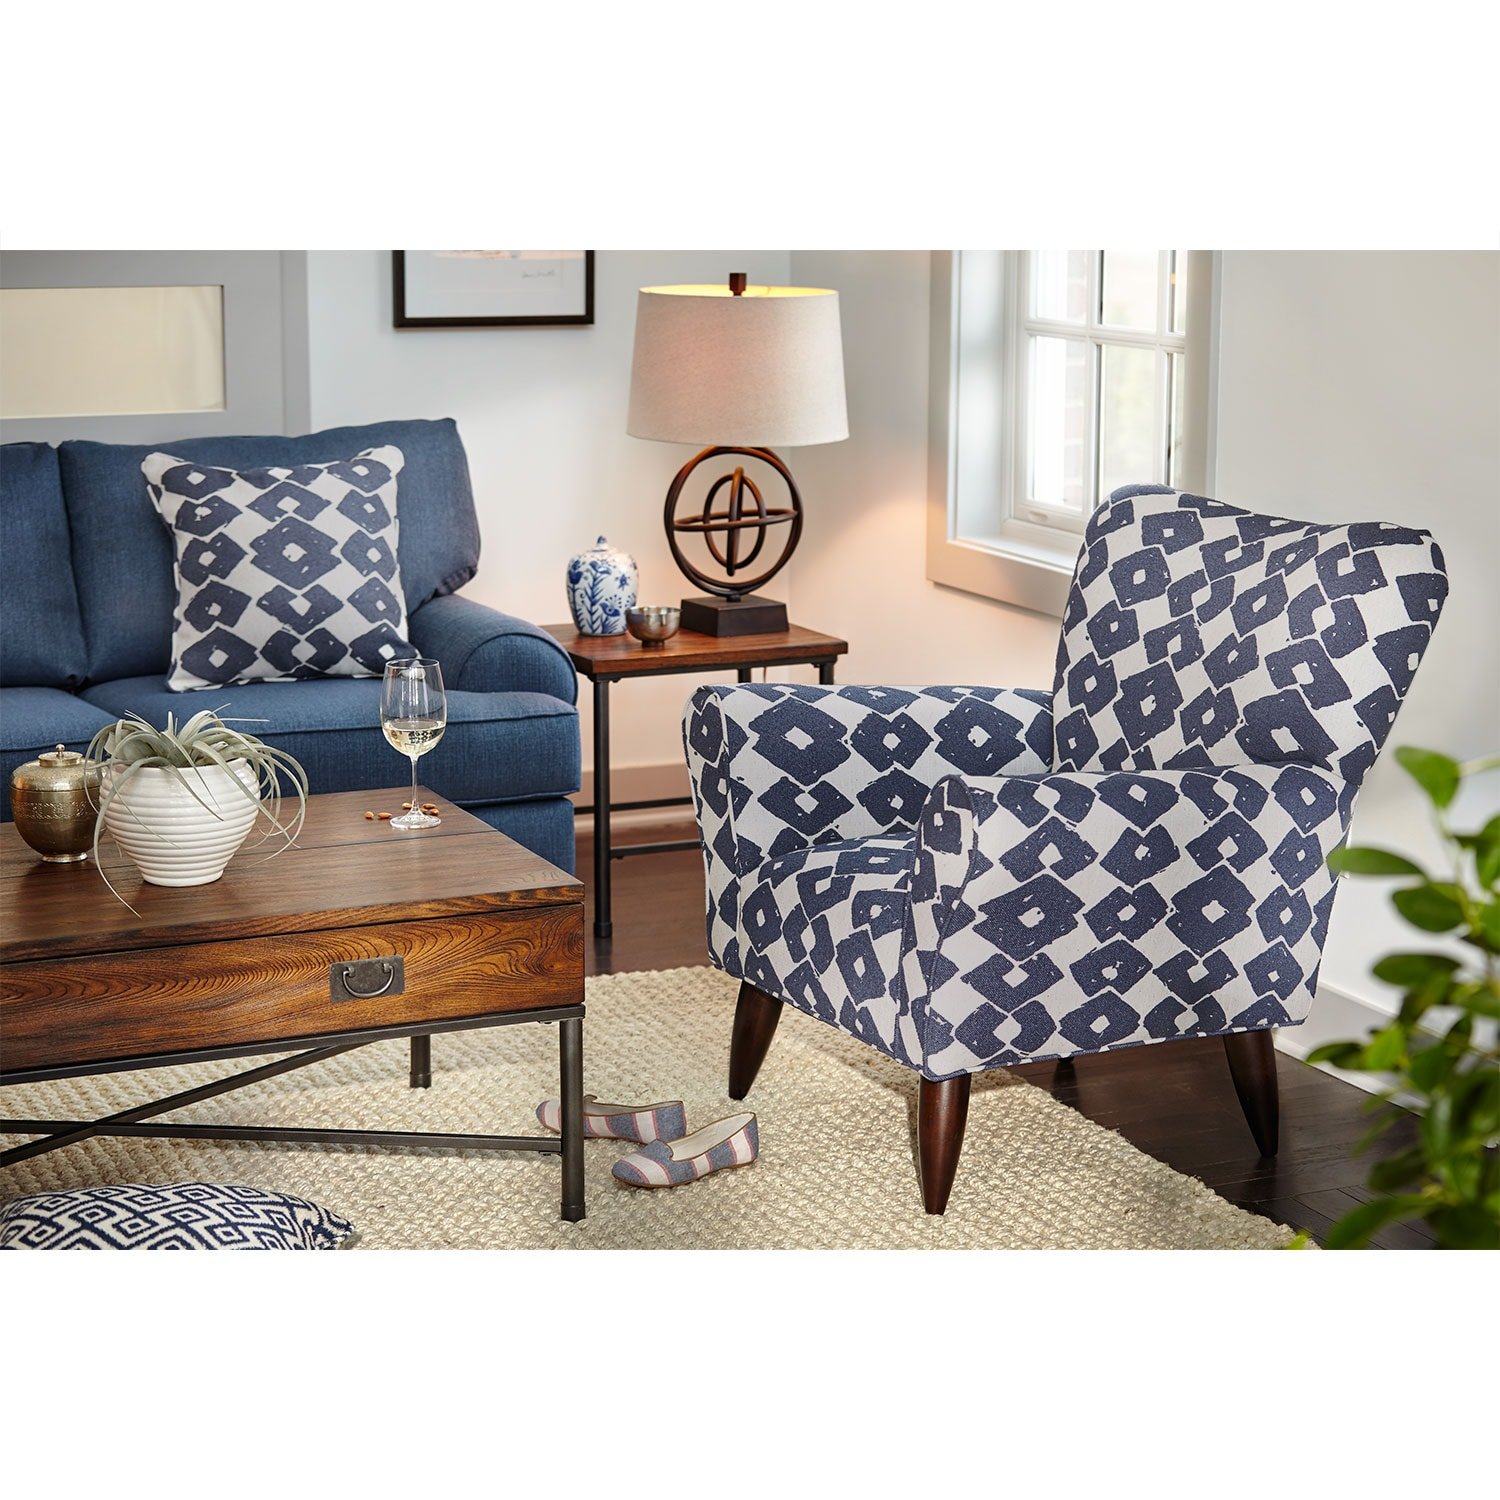 Jessie Accent Chair - Blue | Value City Furniture and Mattresses